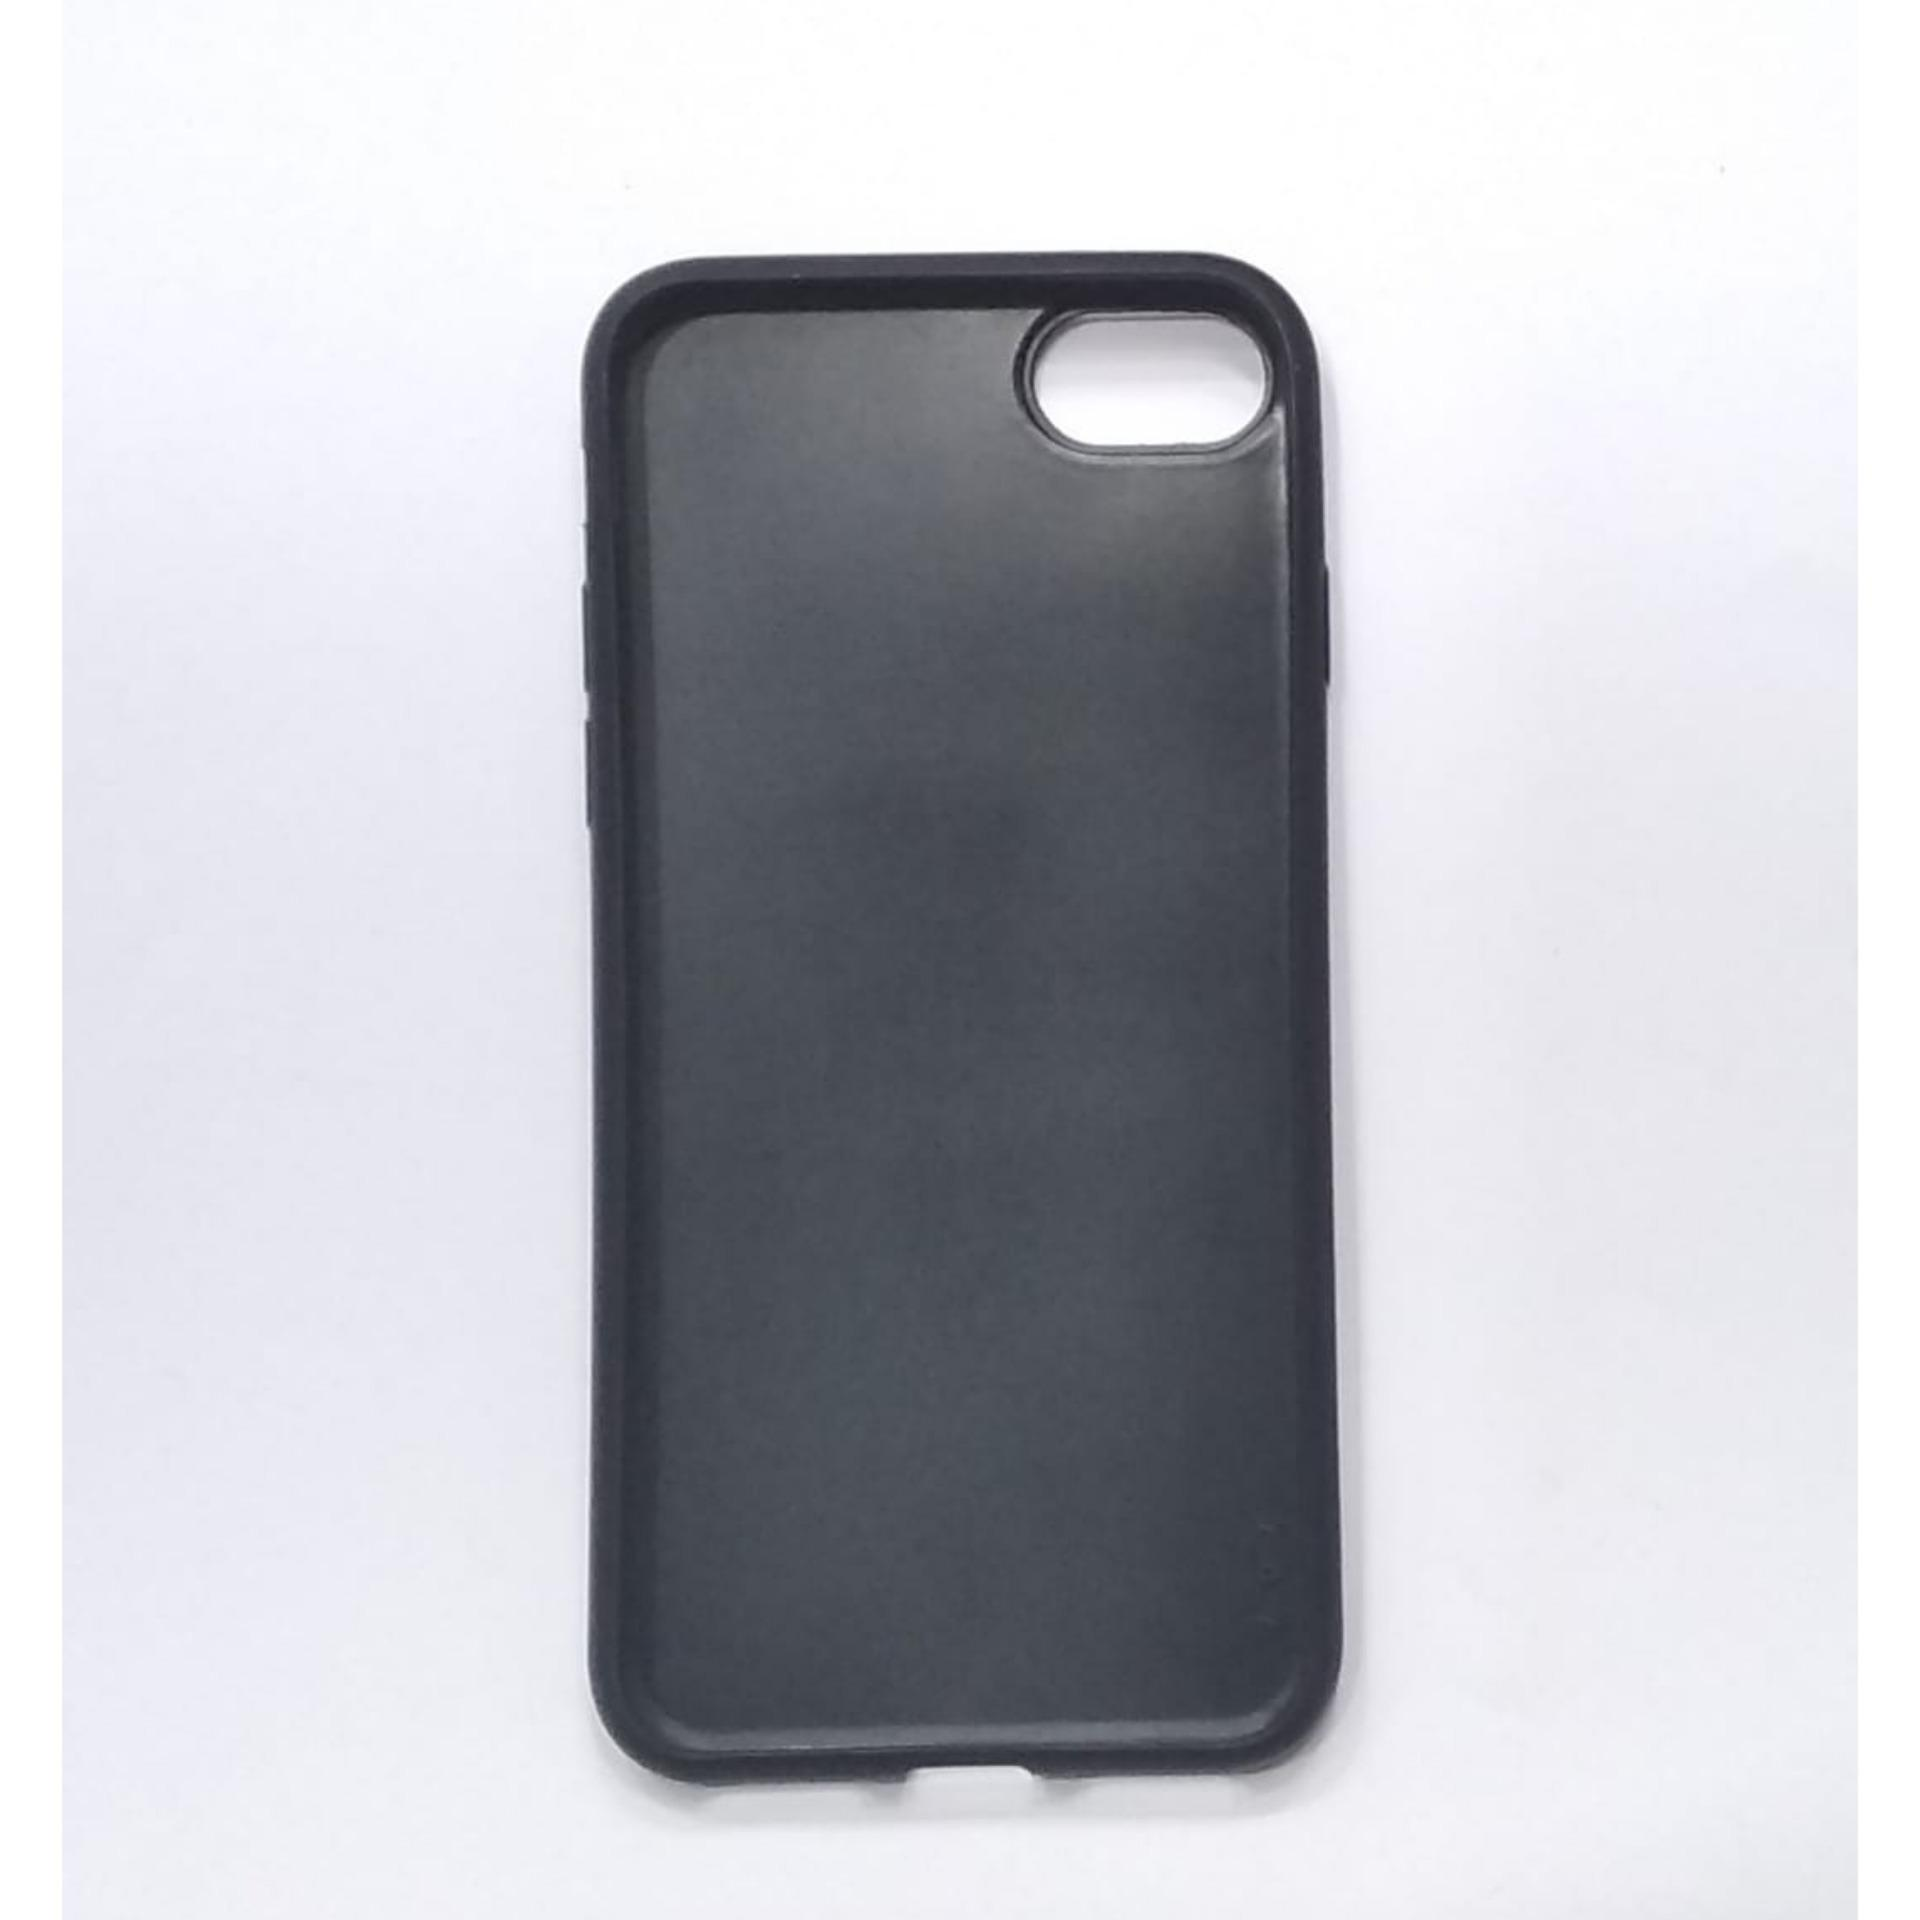 ... Jemuran Source Buy & Sell Cheapest LINE TALI GANTUNG Best Quality Product Deals Source Back Case